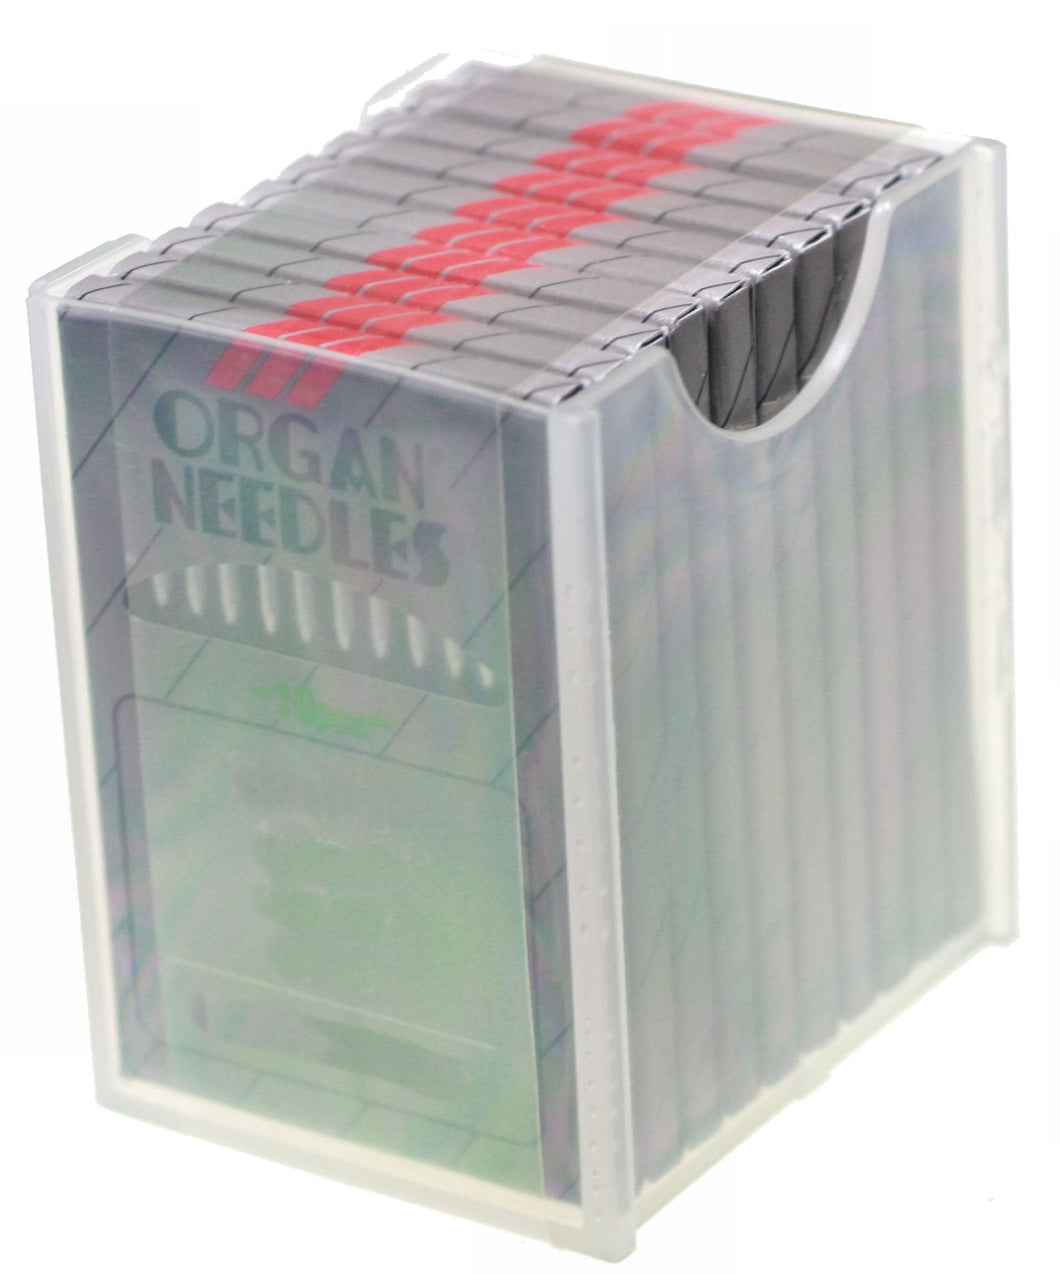 ORGAN NEEDLES - DBX-K5 - 75/11 SHARP - TITANIUM - BOX OF 100 NEEDLES